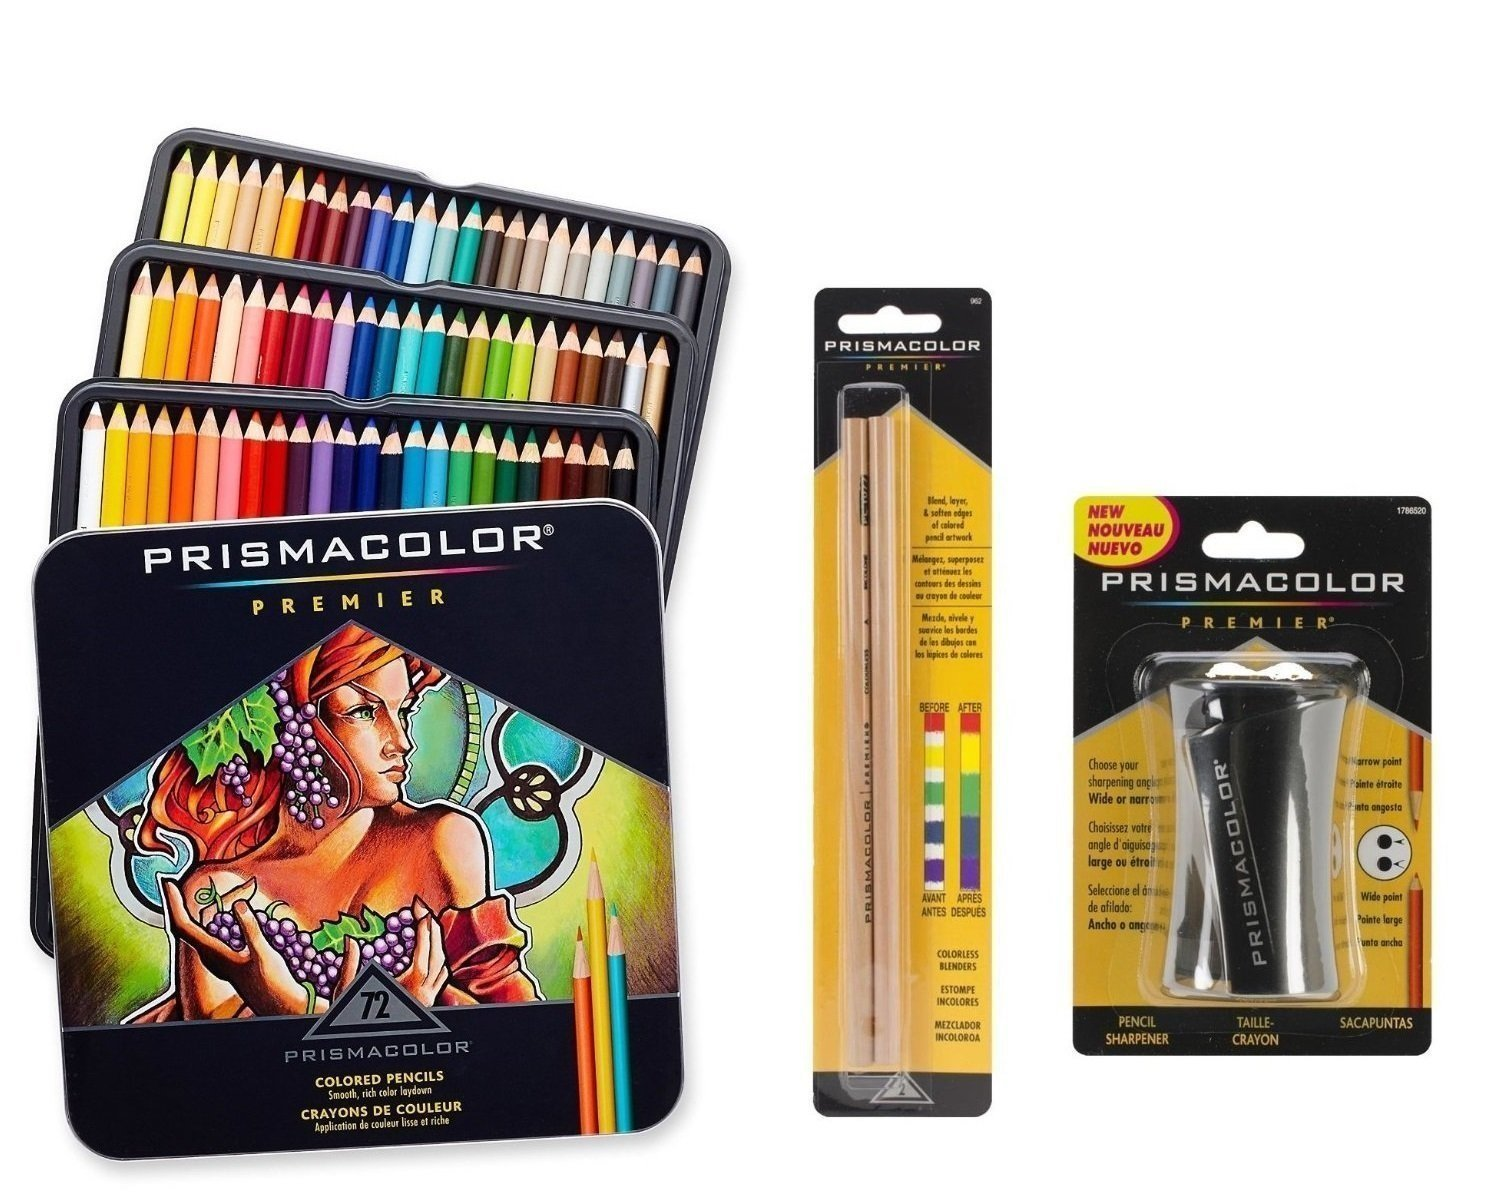 Prismacolor Premier Colored Pencil and Accessory Set, Set of 72 Premier Colored Pencils, One Premier Pencil Sharpener, and a 2-pack of Prismacolor Premier Colorless Blender Pencils